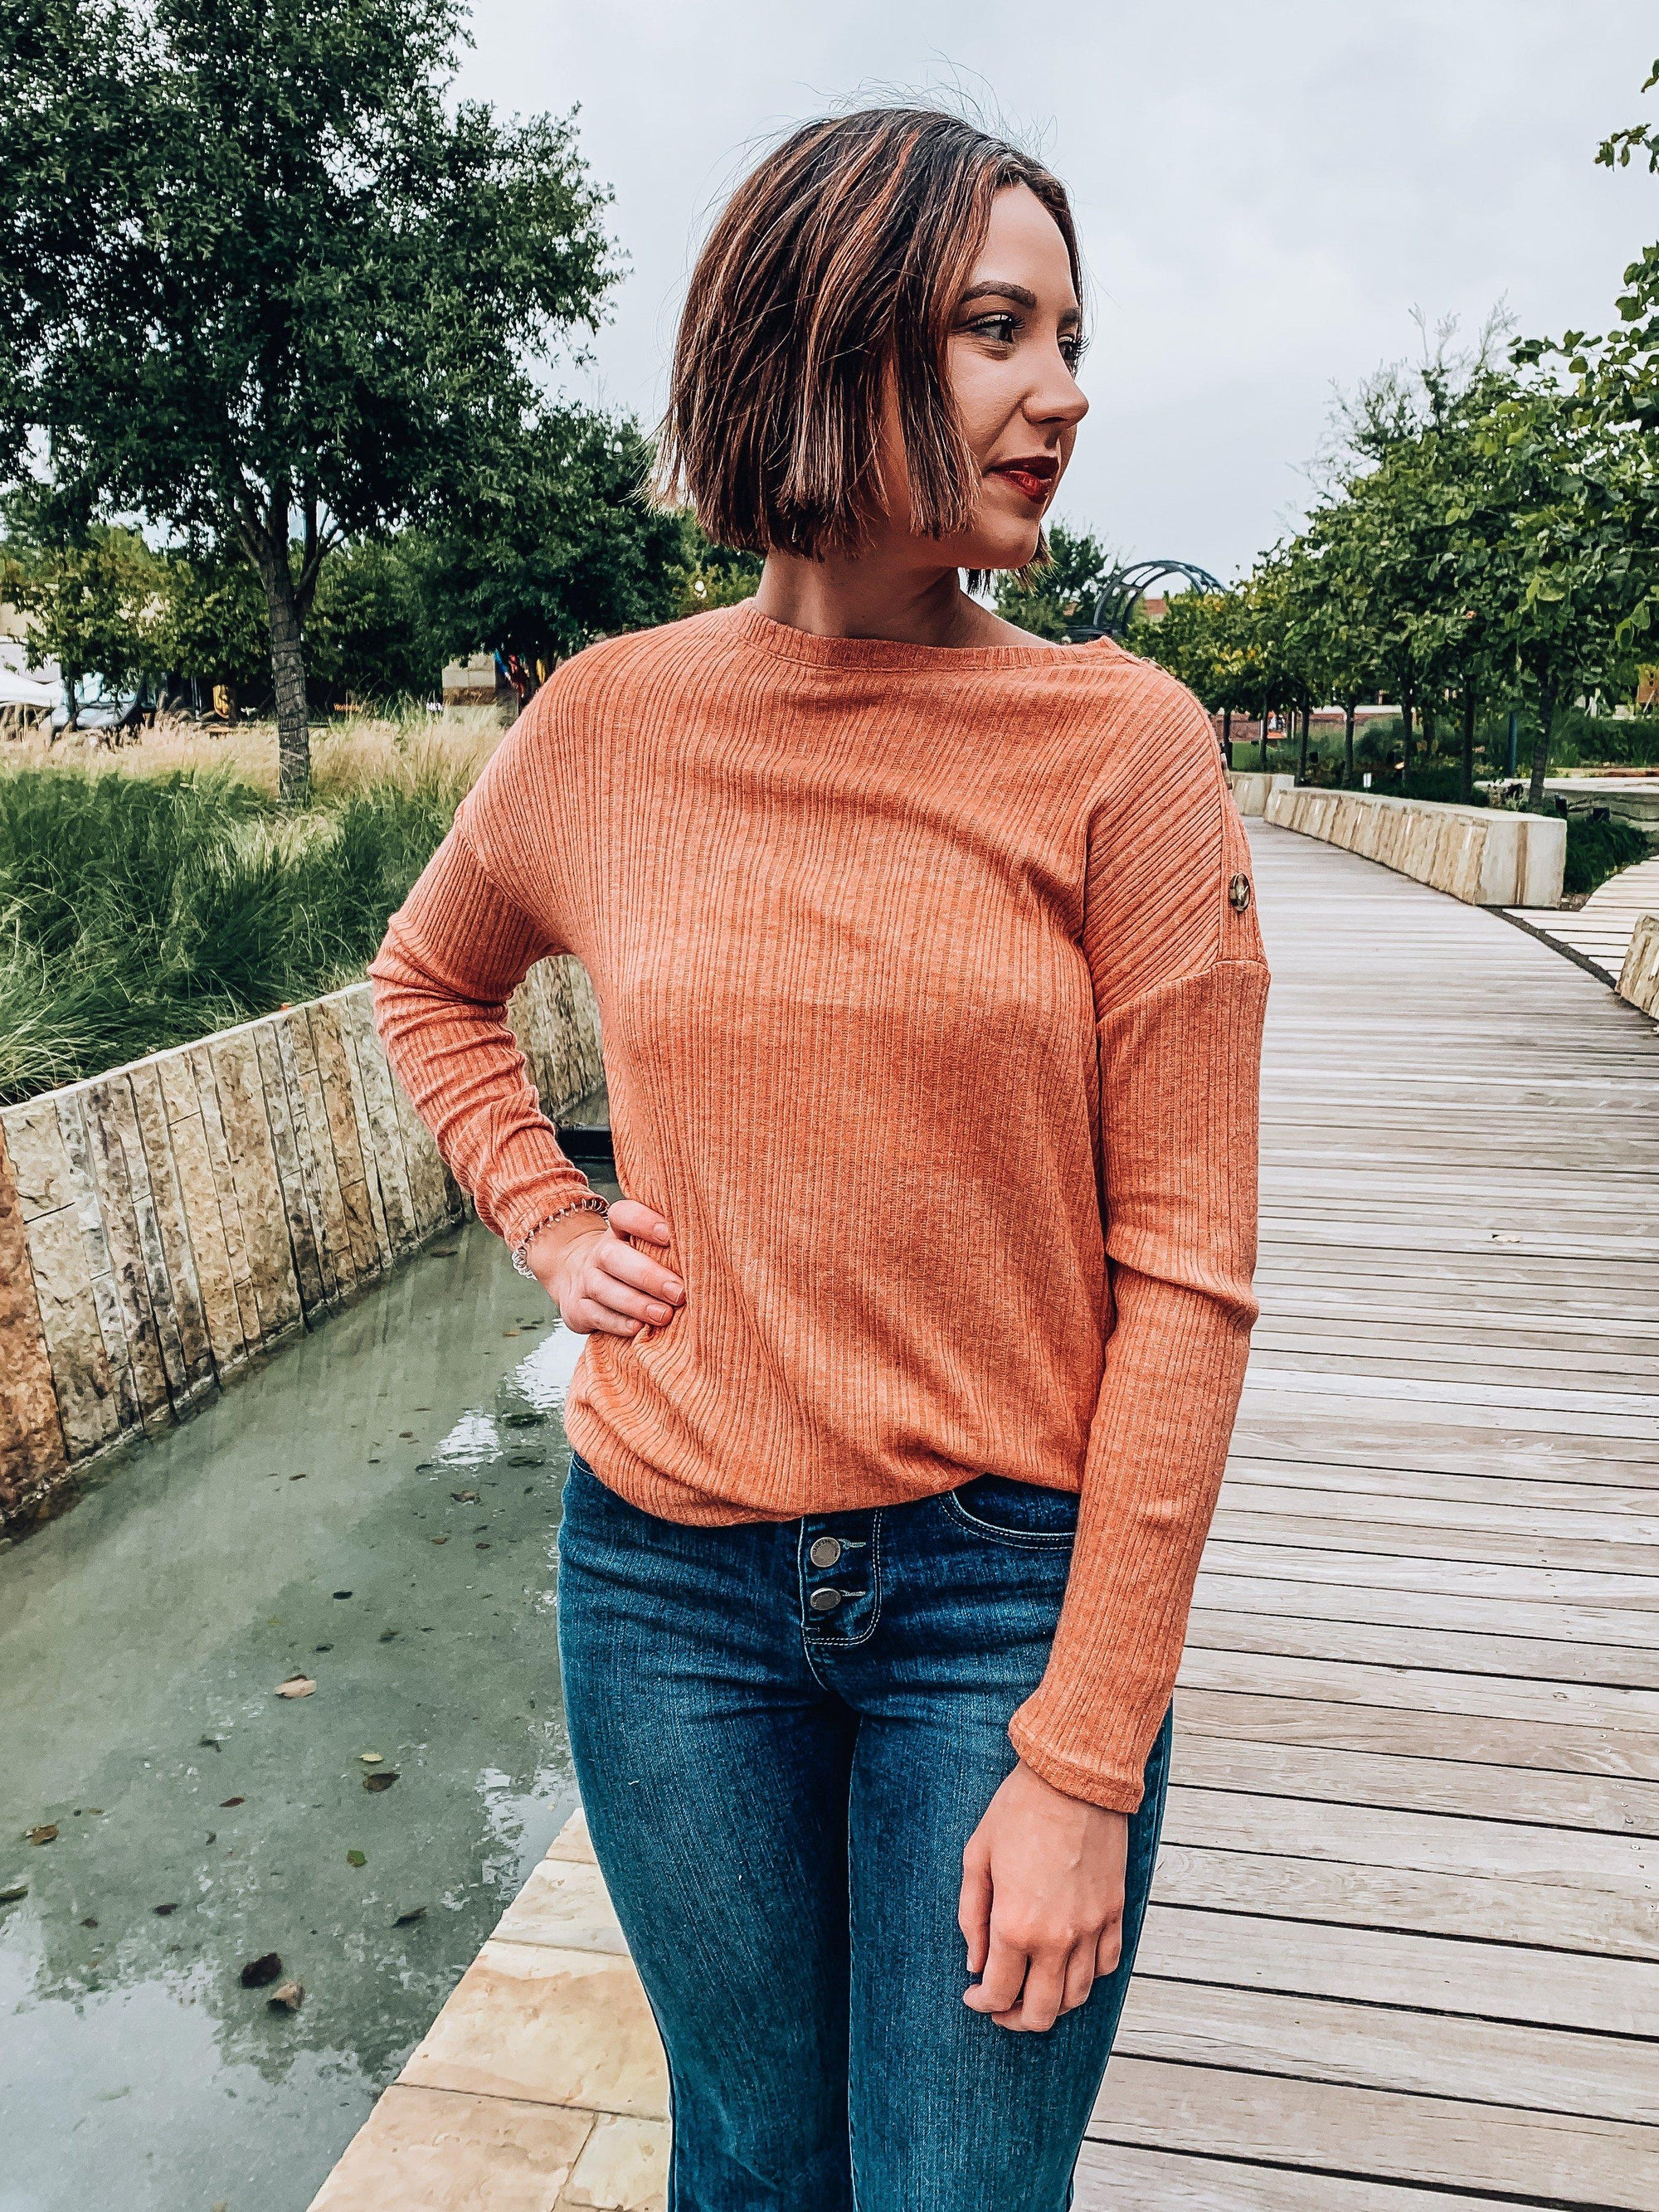 Hello Pumpkin Top-Women's TOP-New Arrivals-Runway Seven